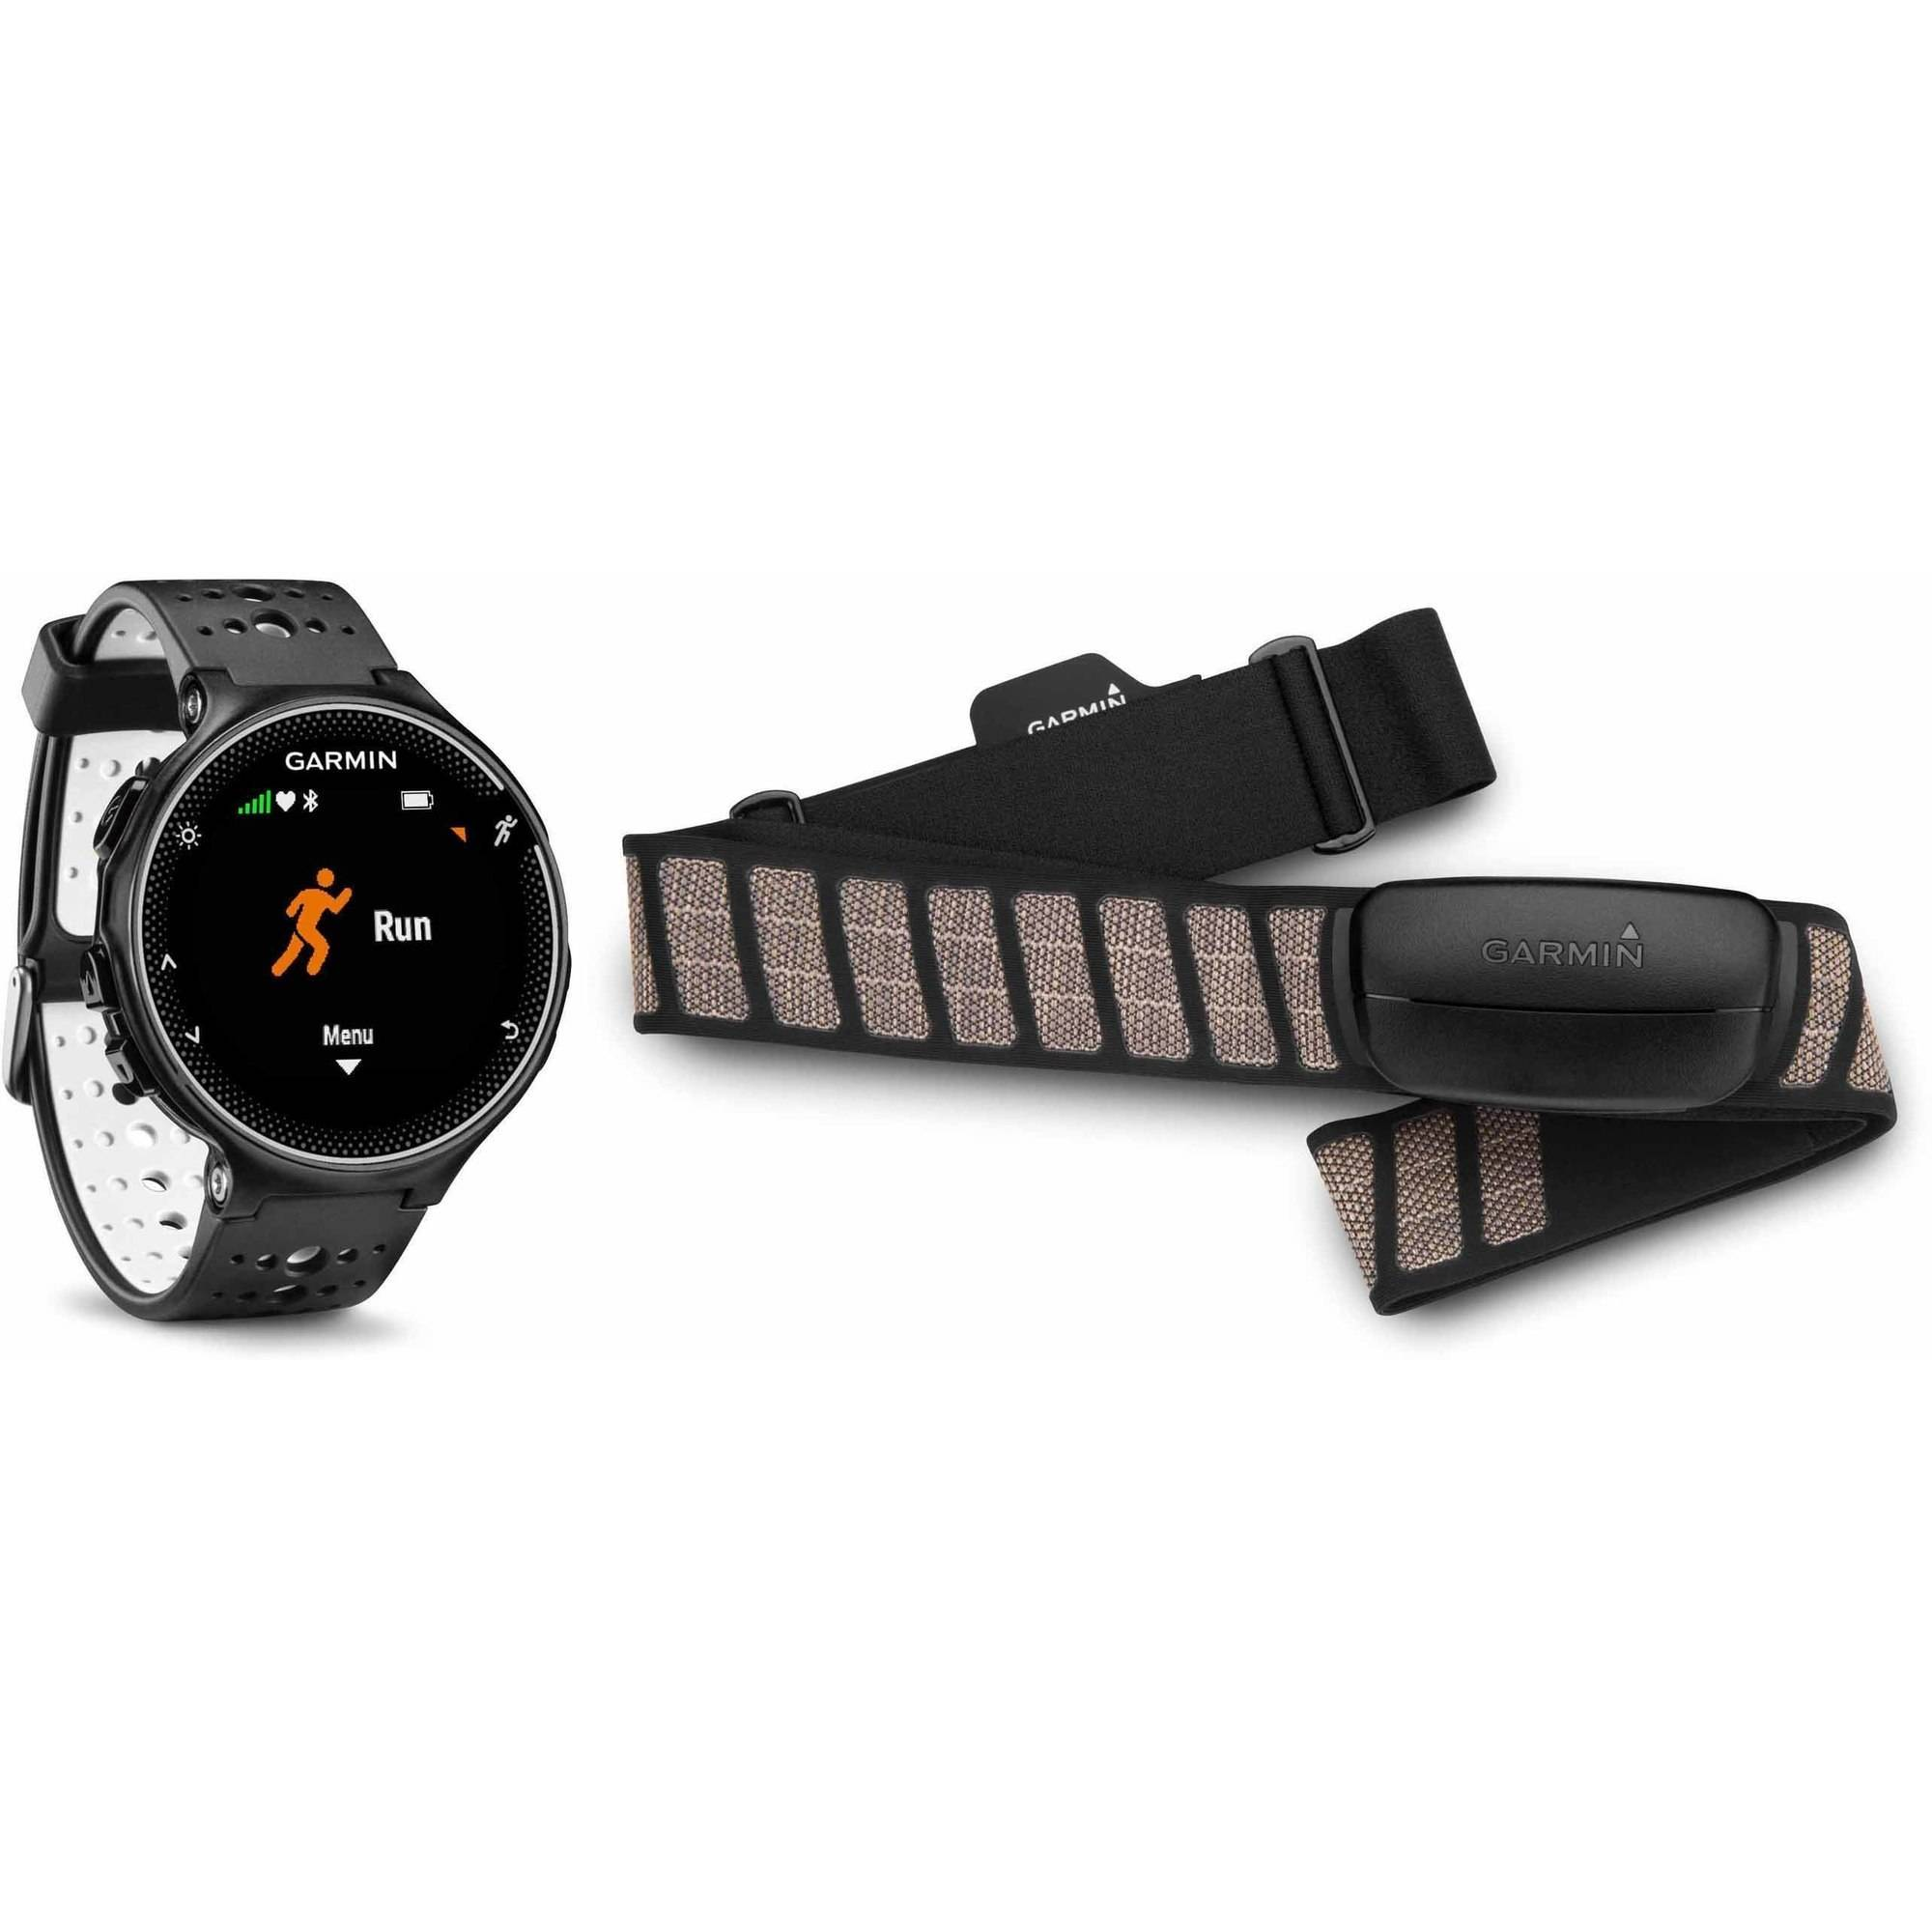 Garmin Forerunner 230 GPS Running Watch Black/White 010-03717-42